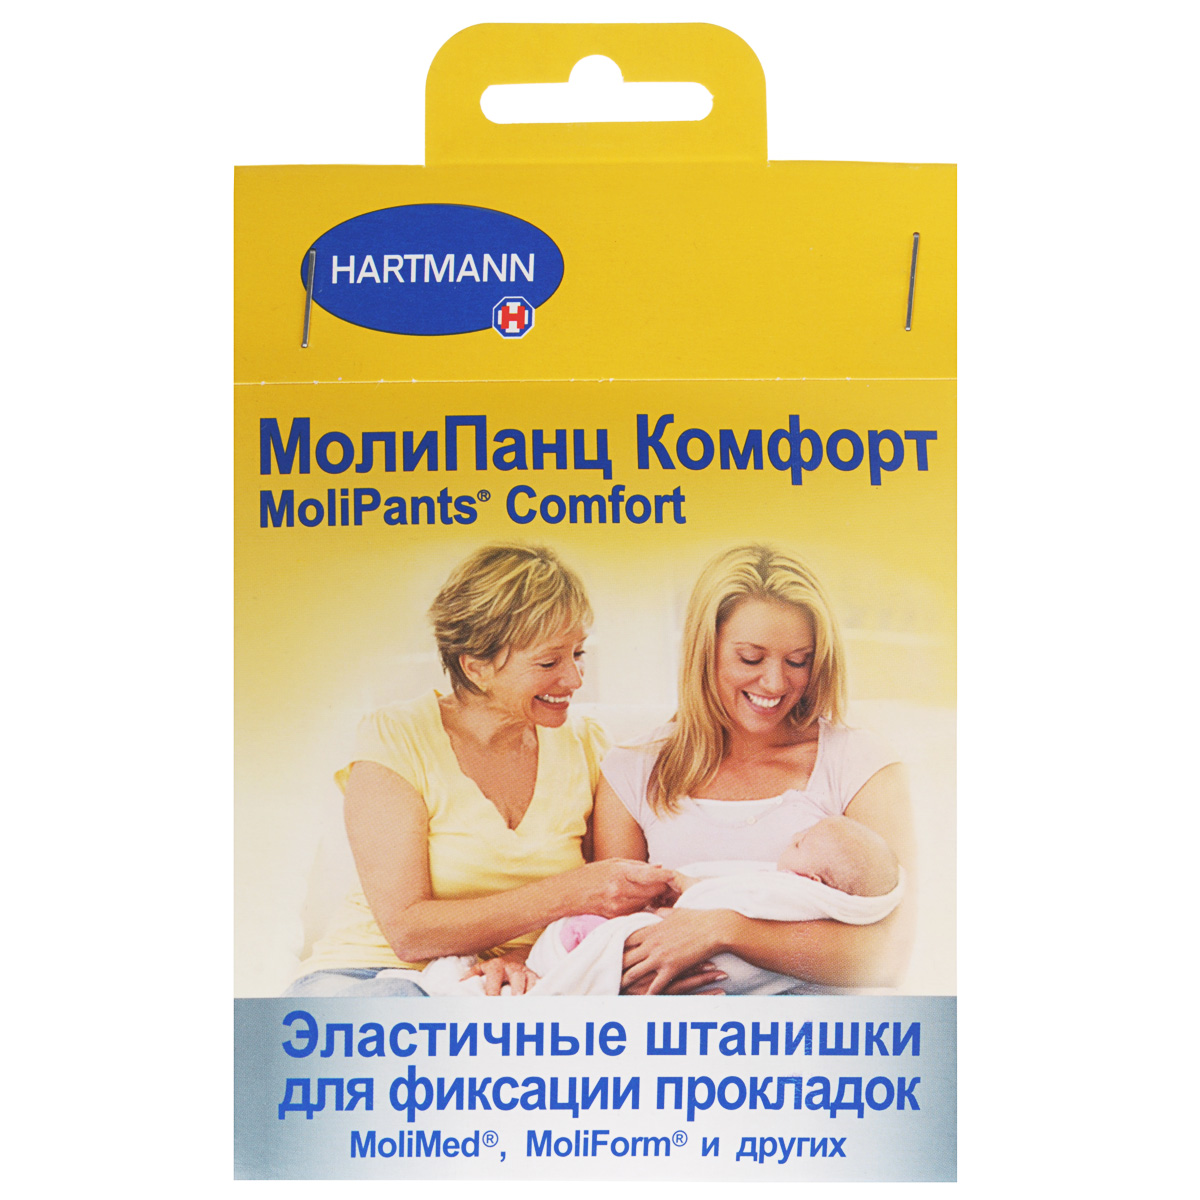 Трусы послеродовые Paul Hartmann MoliPants Comfort, цвет: белый. 947784. Размер L (48) nipple kurnosiki 12053 for boys and girls feeding bottles baby products